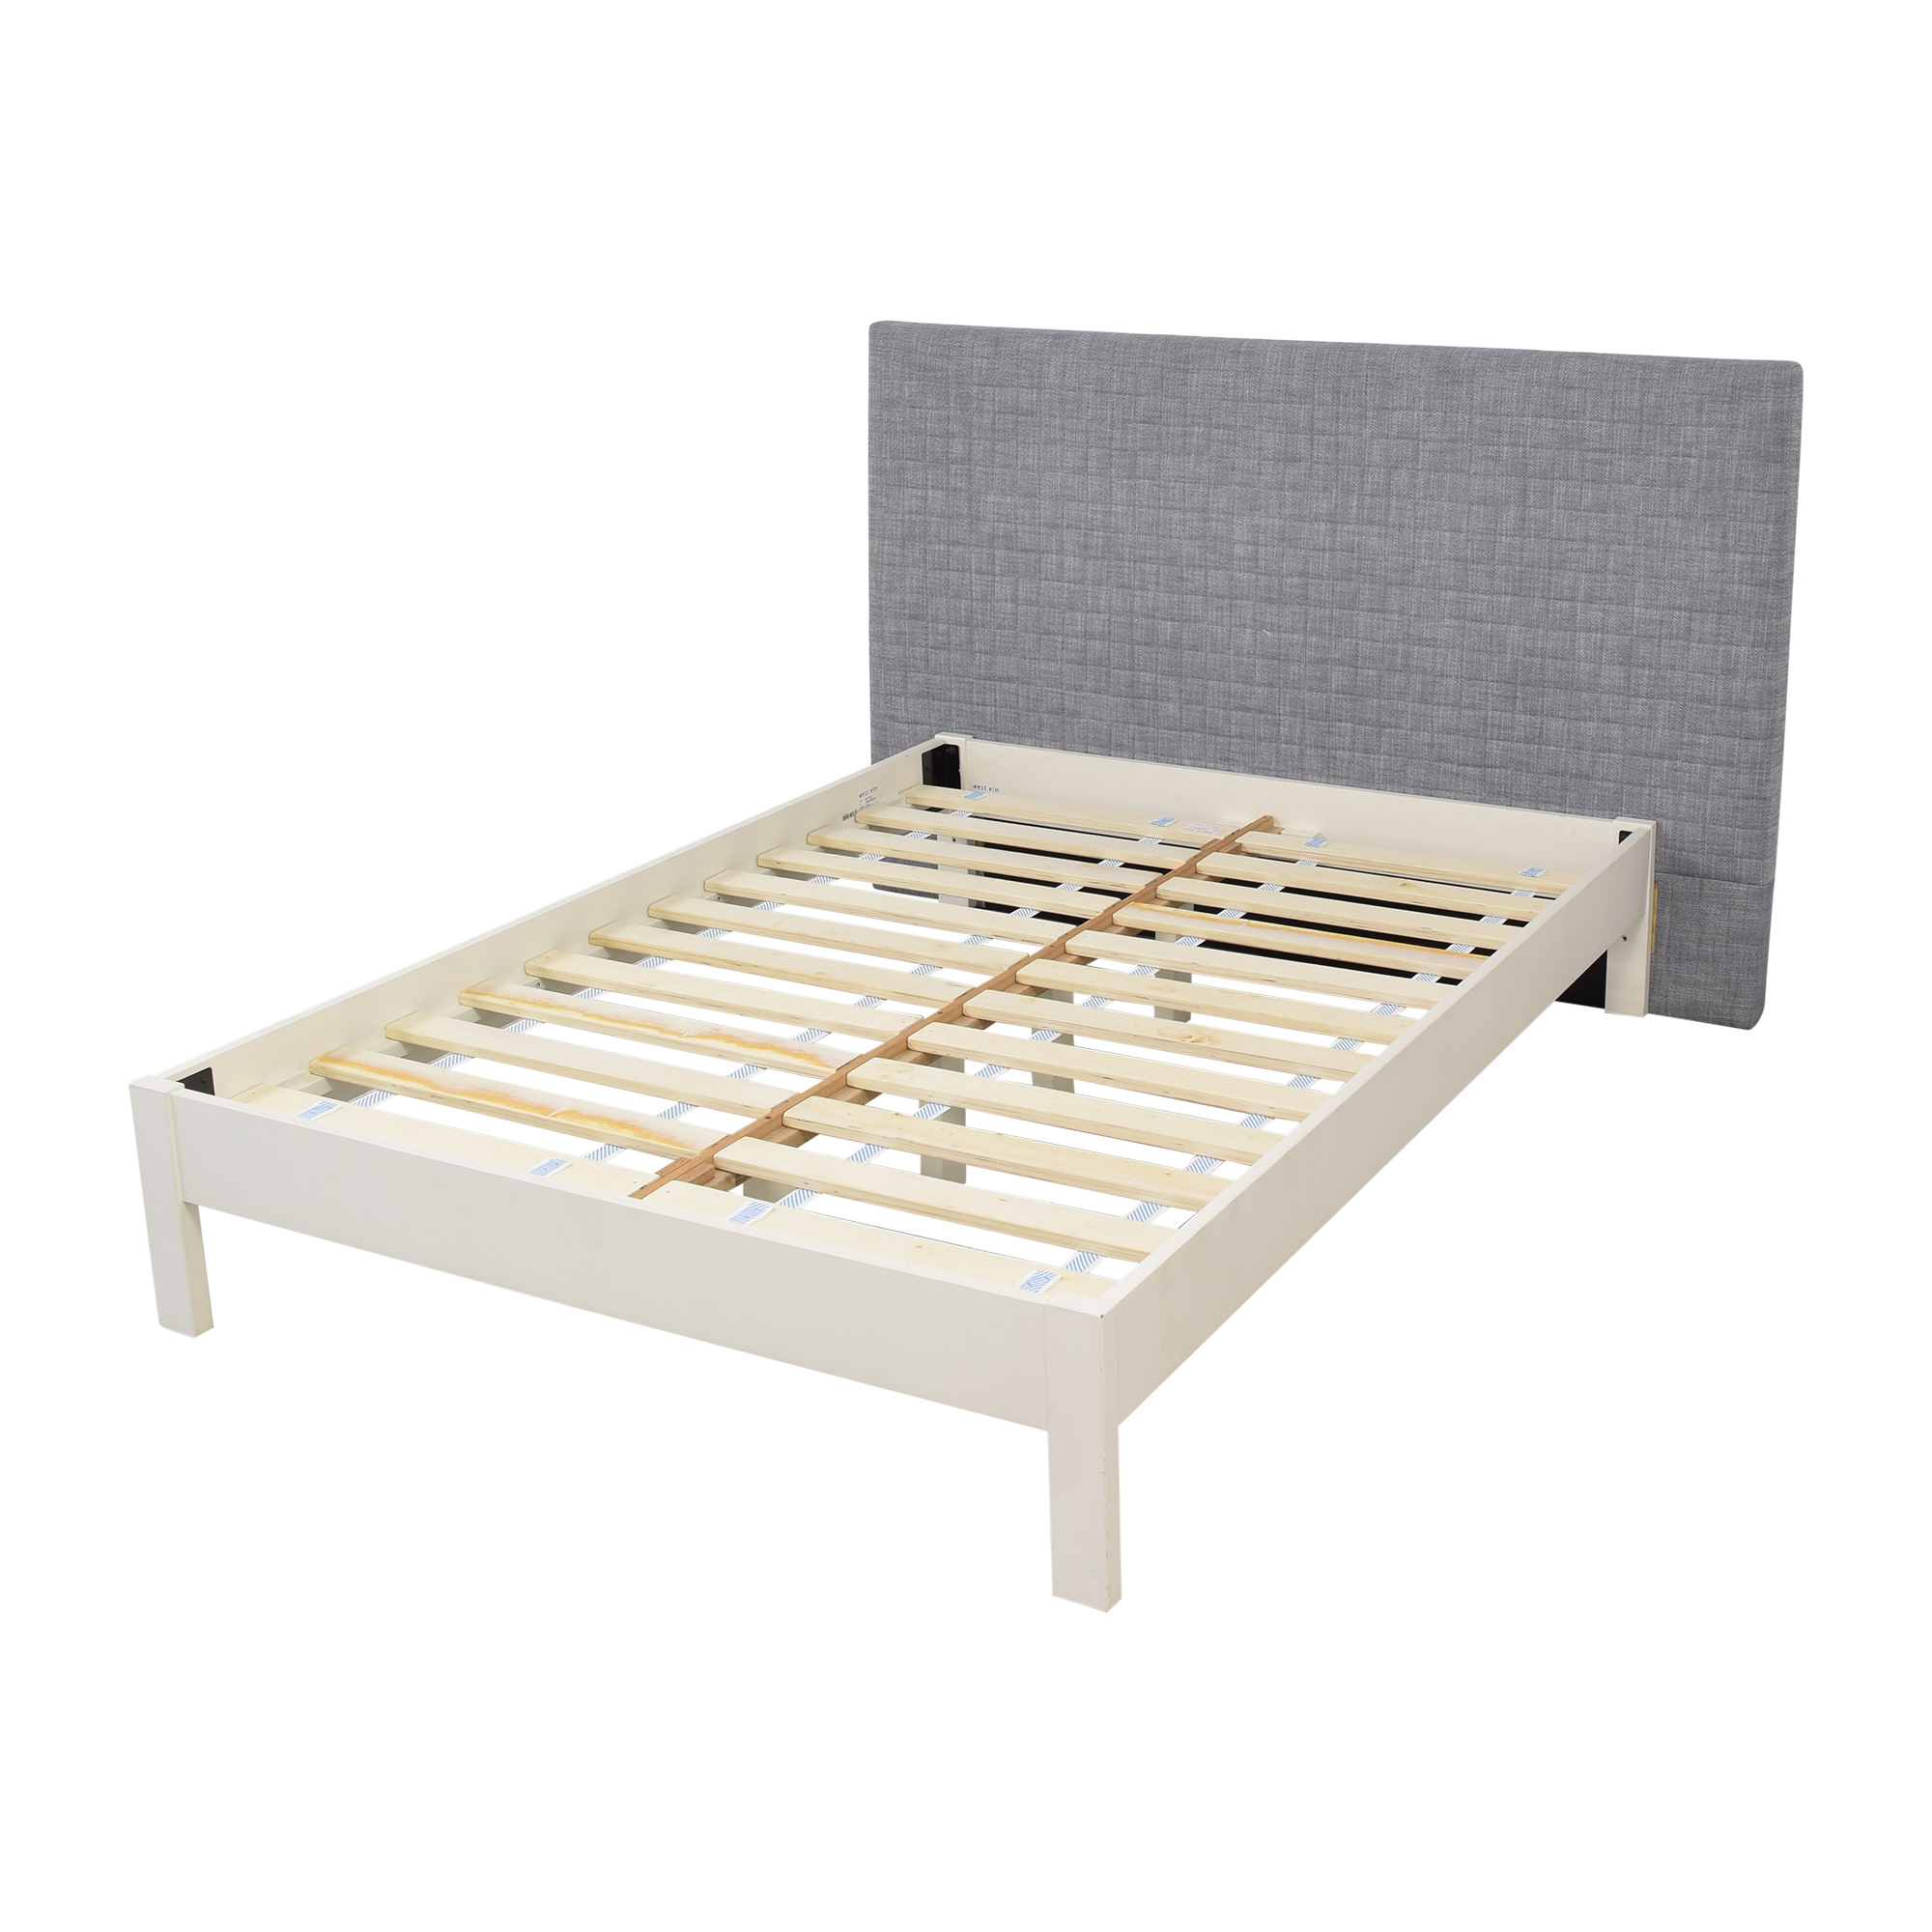 West Elm West Elm Full Size Simple Bed Frame with Upholstered Headboard discount